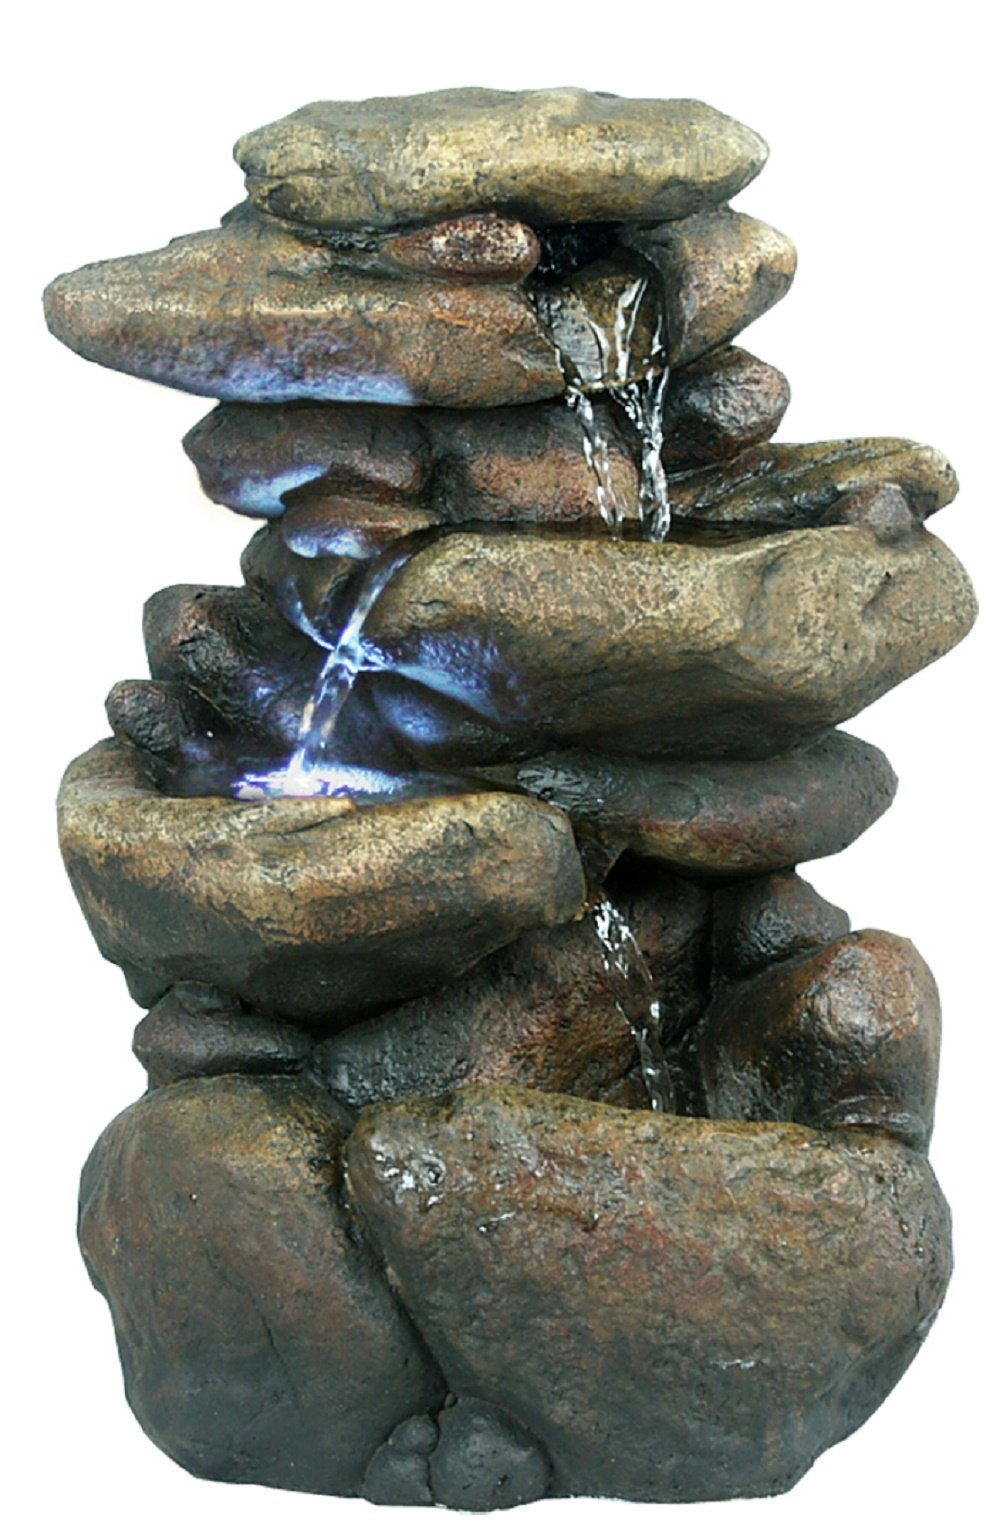 Alpine WIN472 Three Tiered Rock Tabletop Fountain with LED Lights, 11 Inch Tall